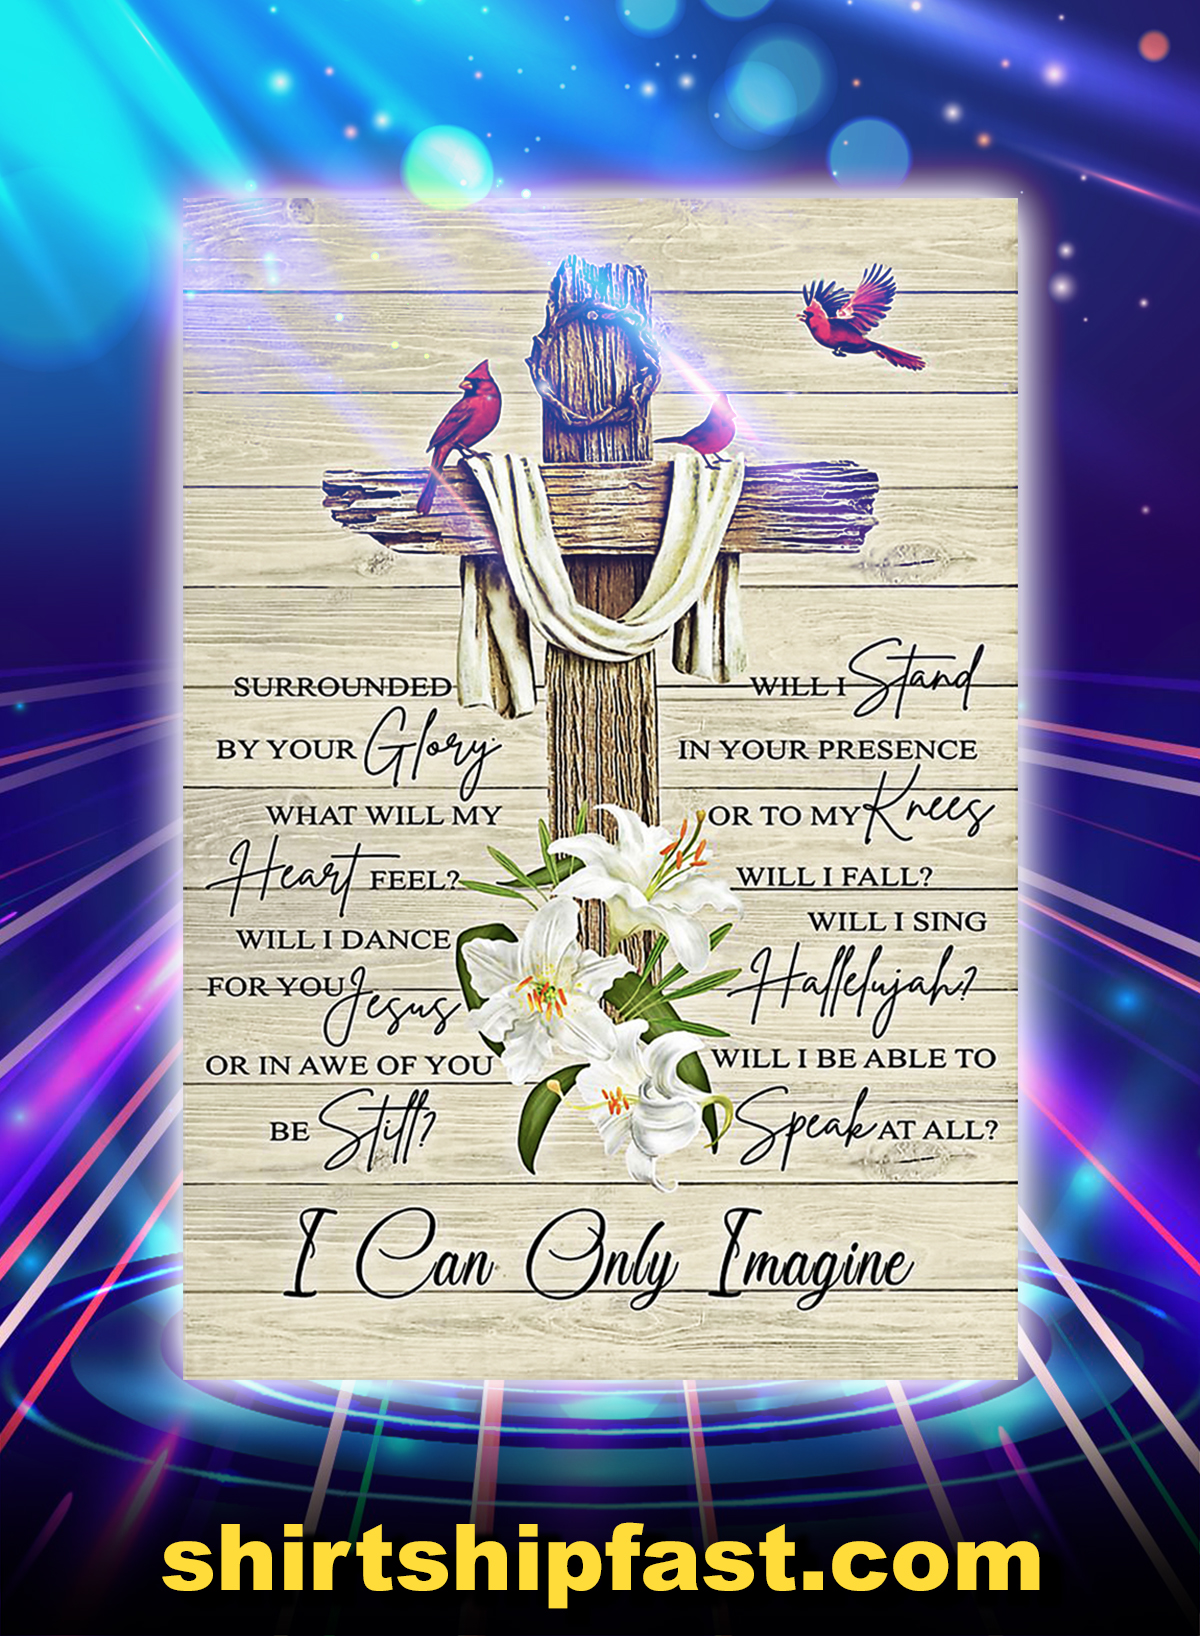 I can only imagine poster - A1